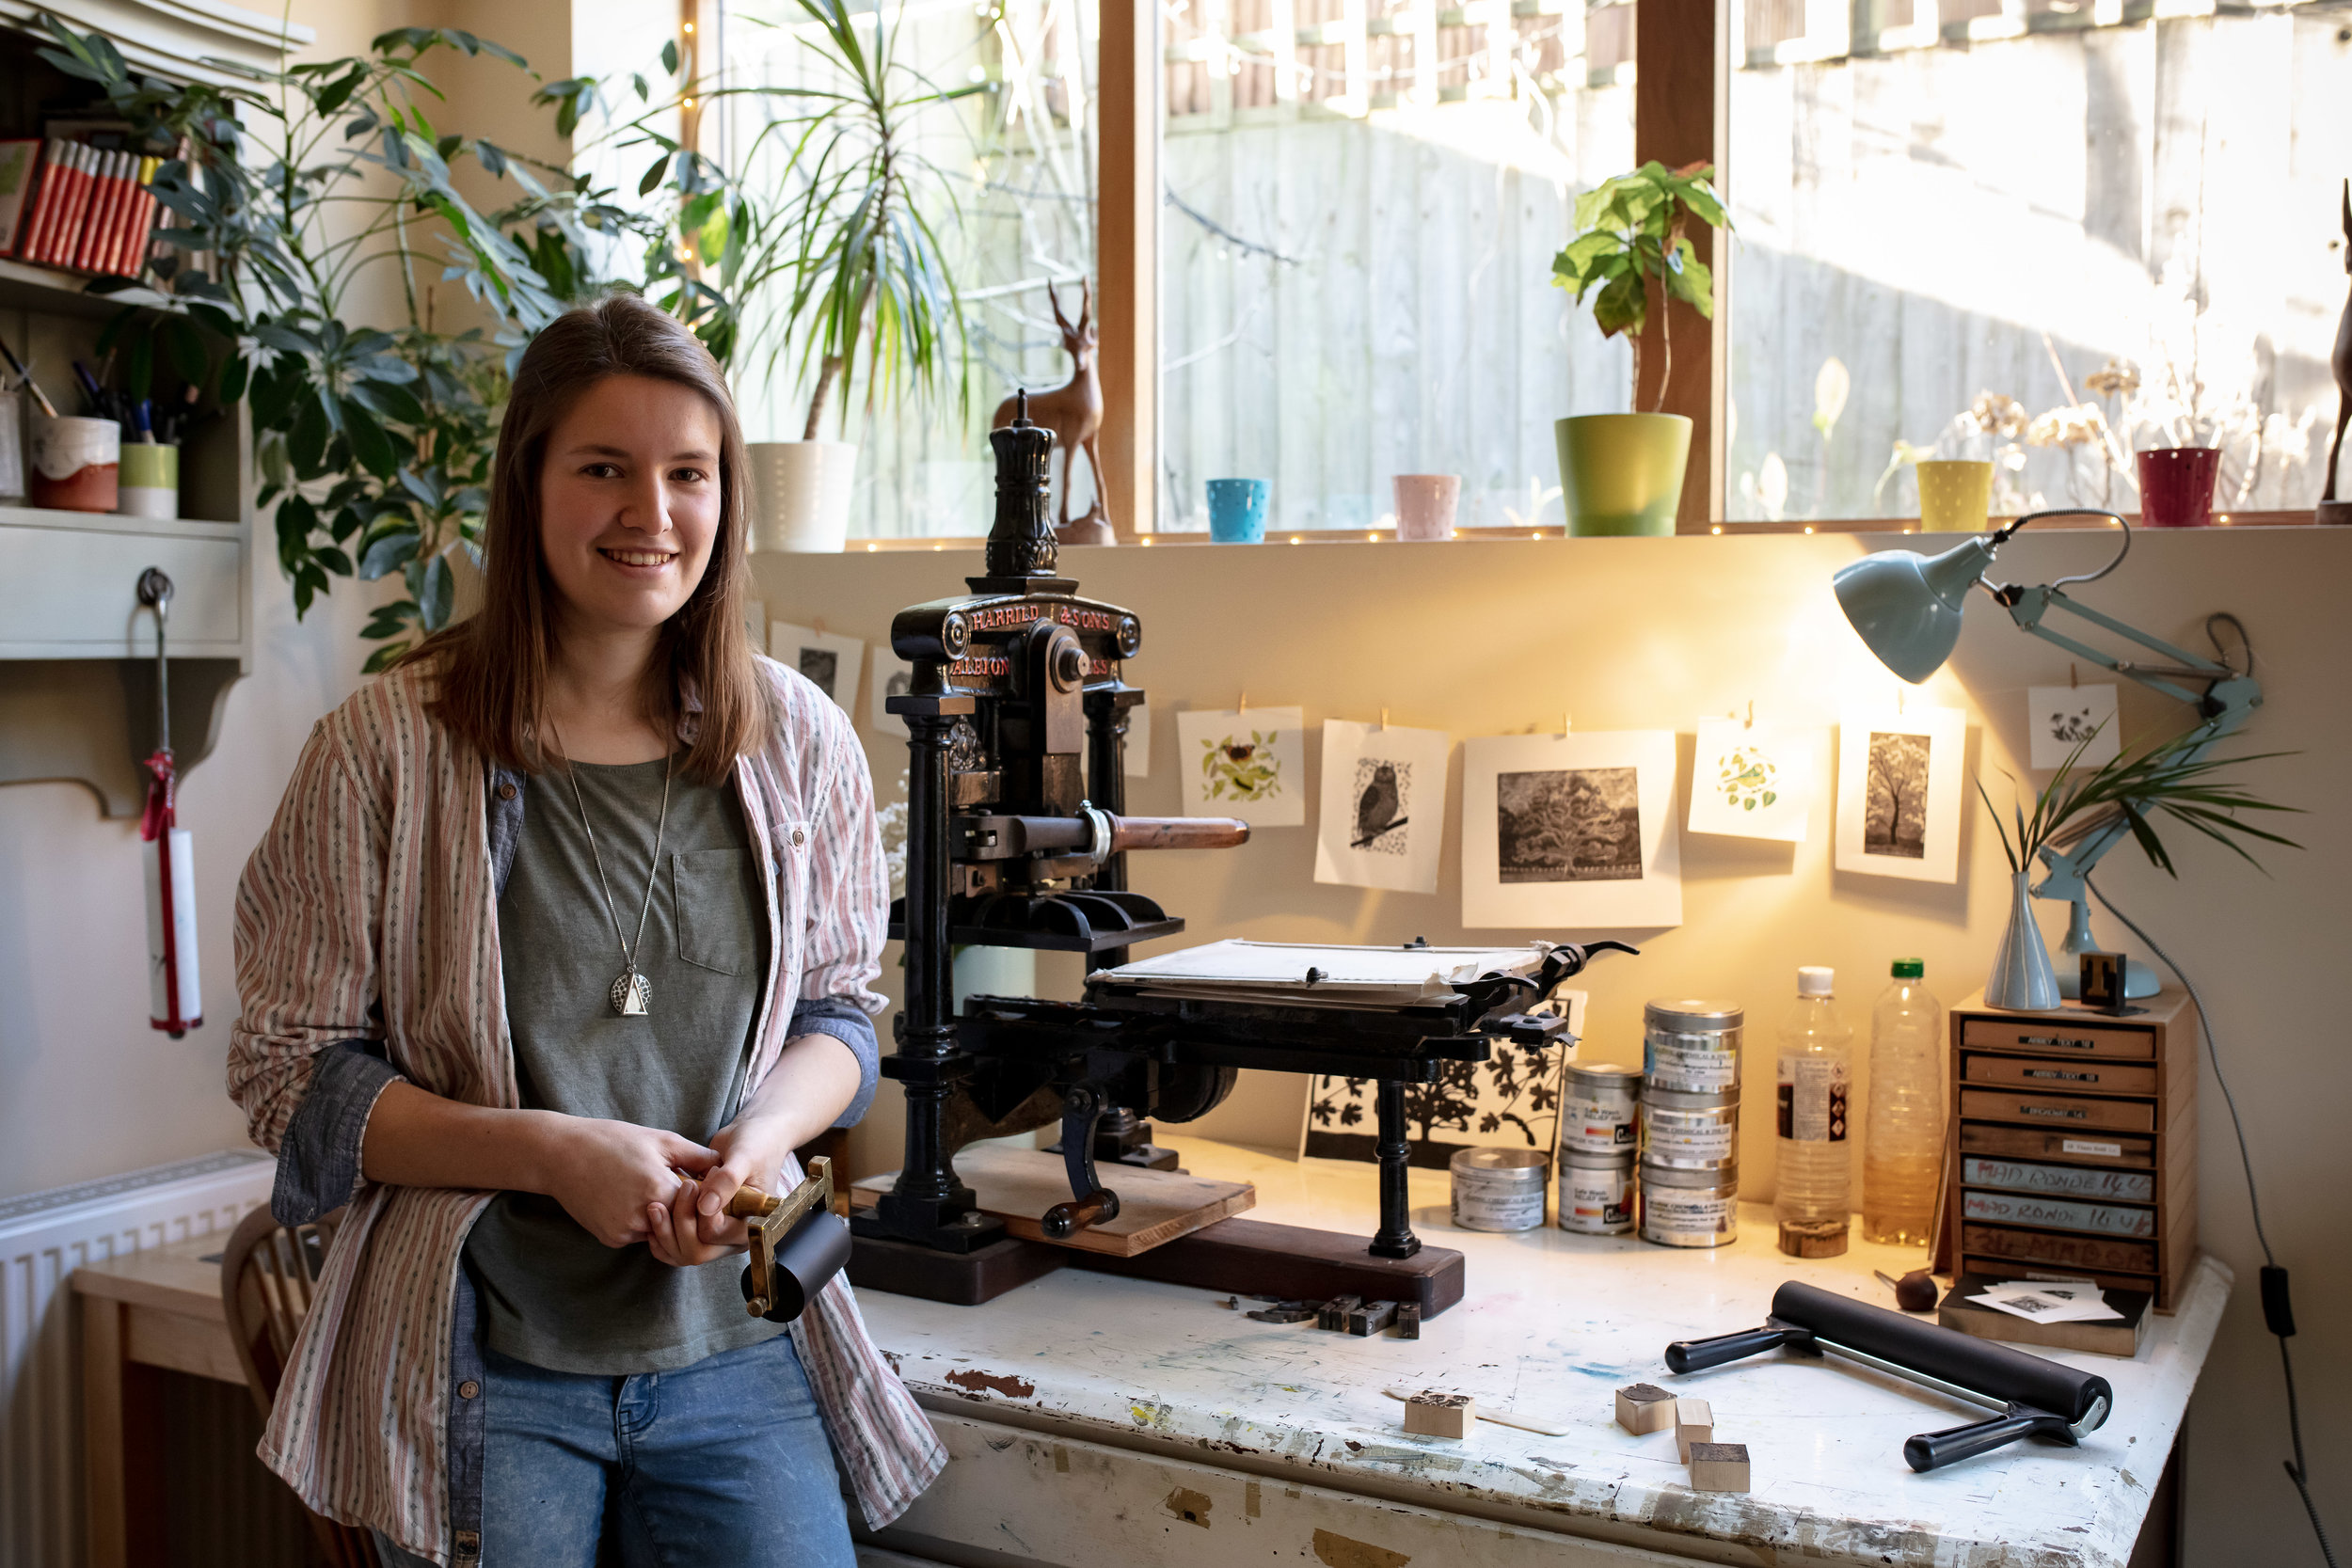 Photograph of Molly and her PRESS : PHOTOGRAPH TAKEN BY PAUL GROOM PHOTOGRAPHY FOR ISSUE 6 OF PRESSING MATTERS MAG